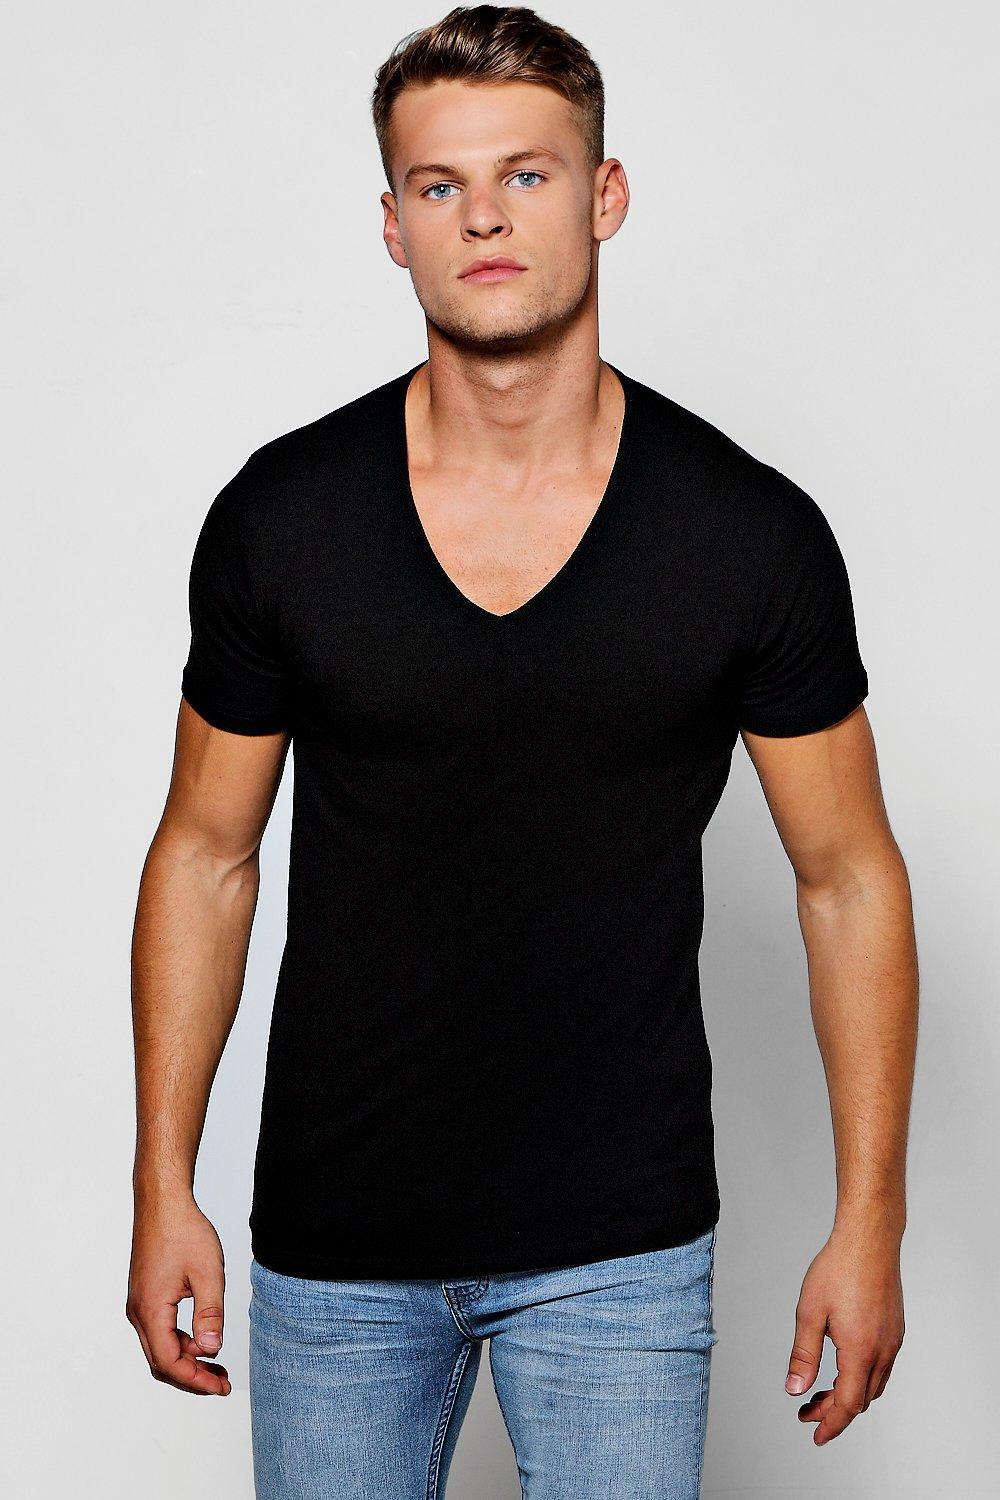 59e2351e3fcd Mens Black Muscle Fit V-Neck T-Shirt. Hover to zoom